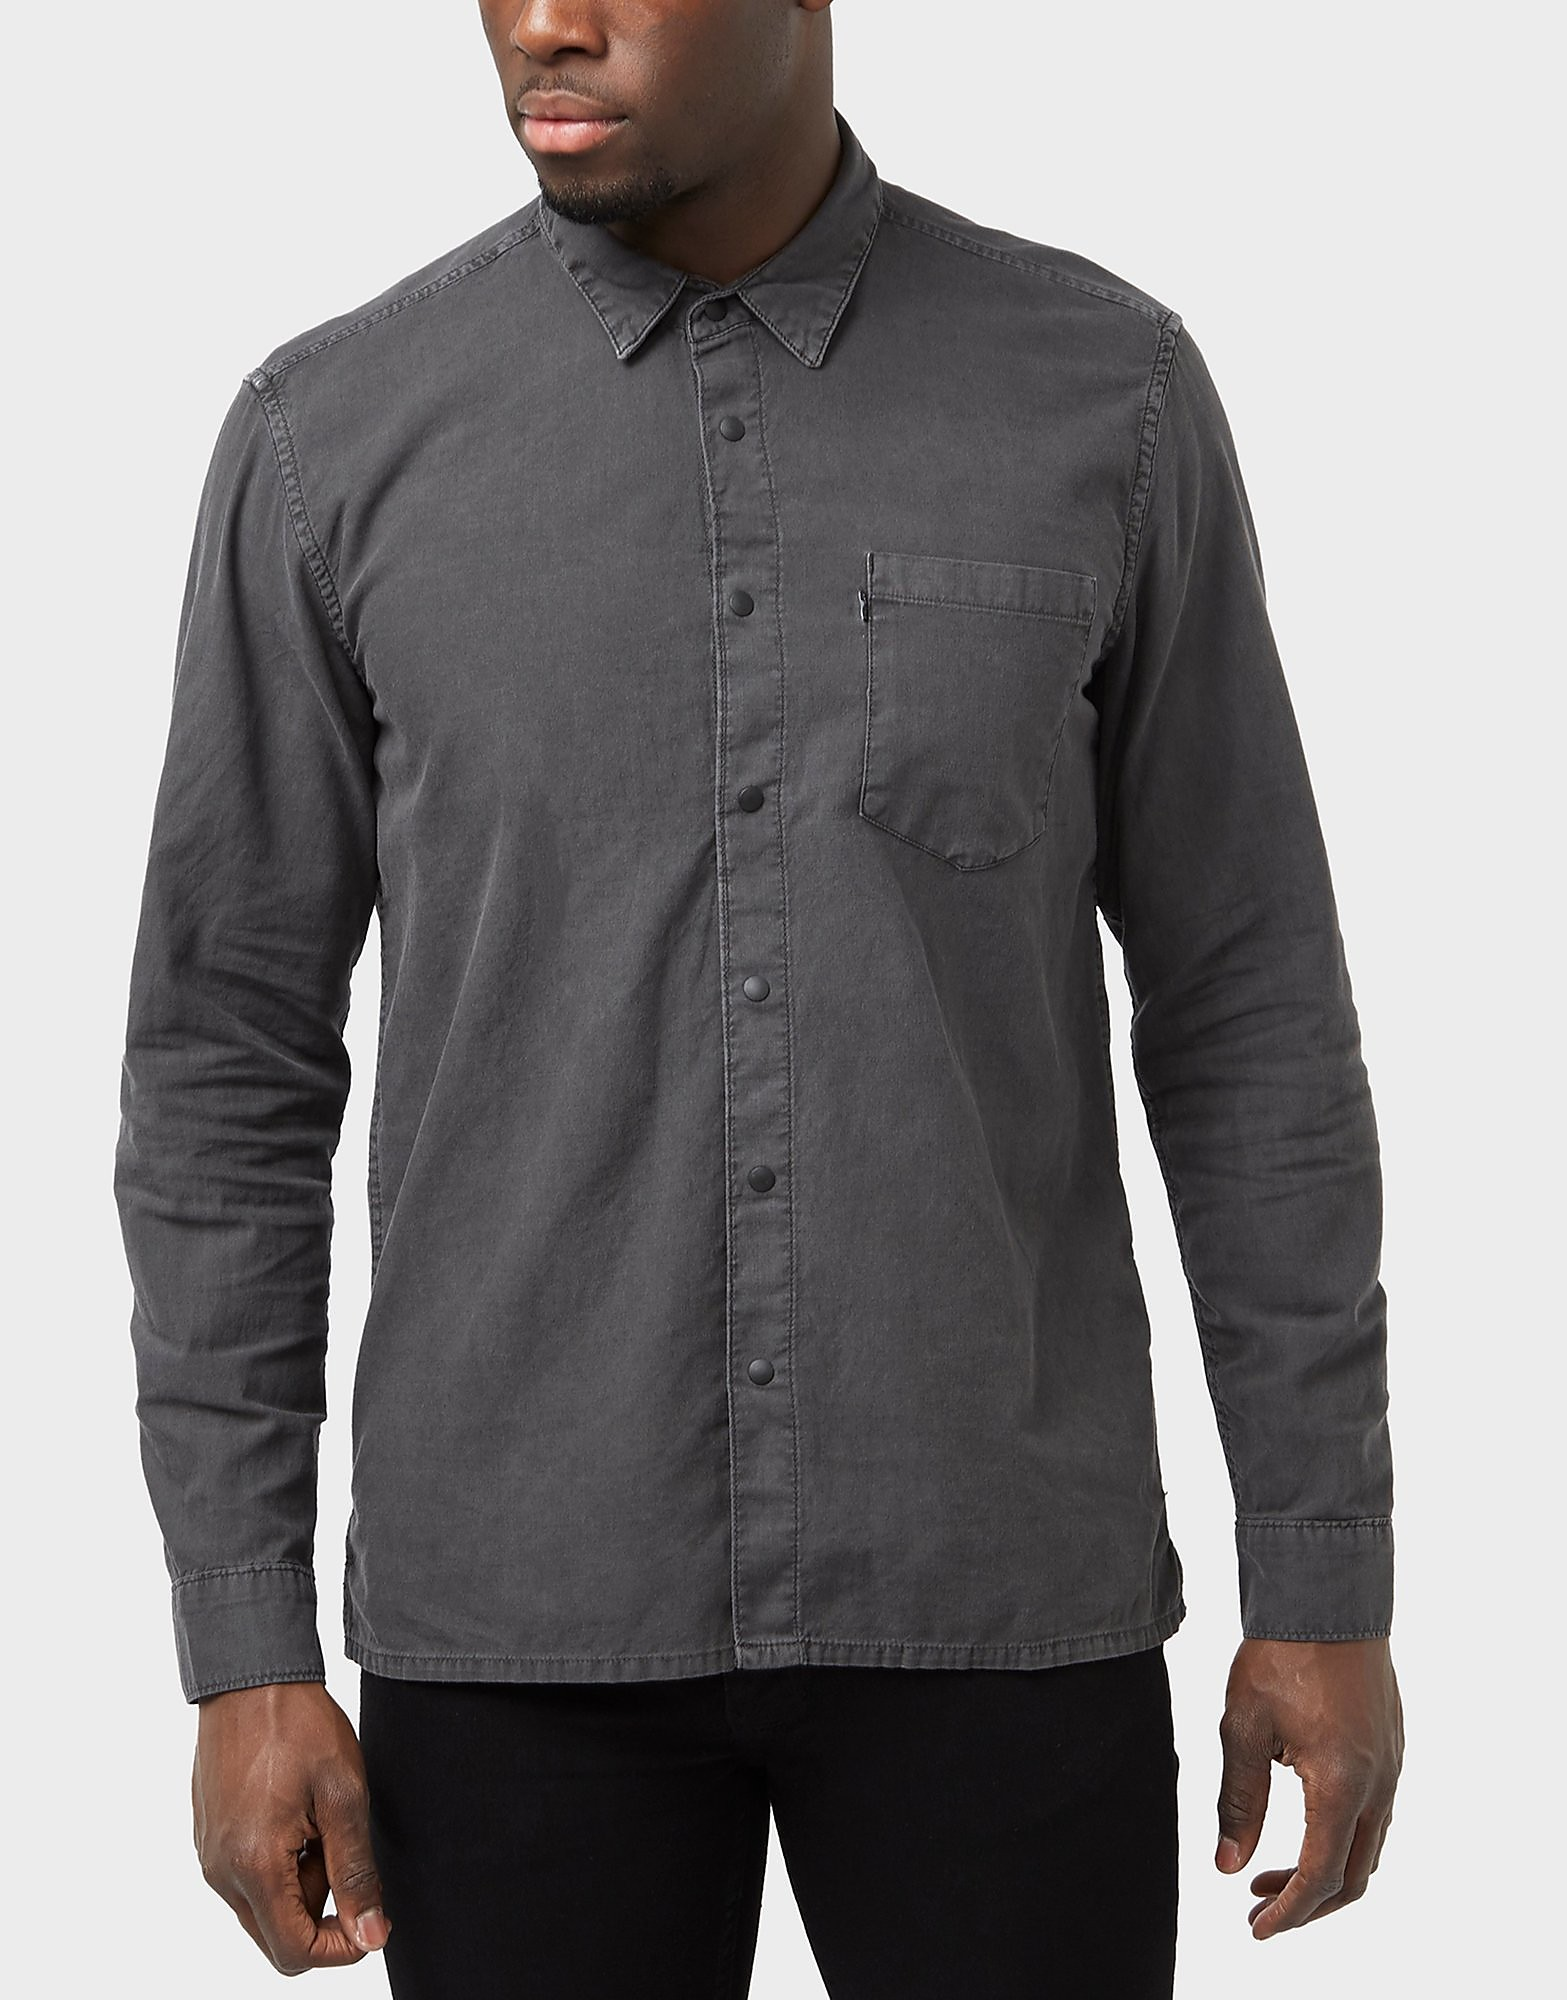 Levis Long Sleeve Shirt